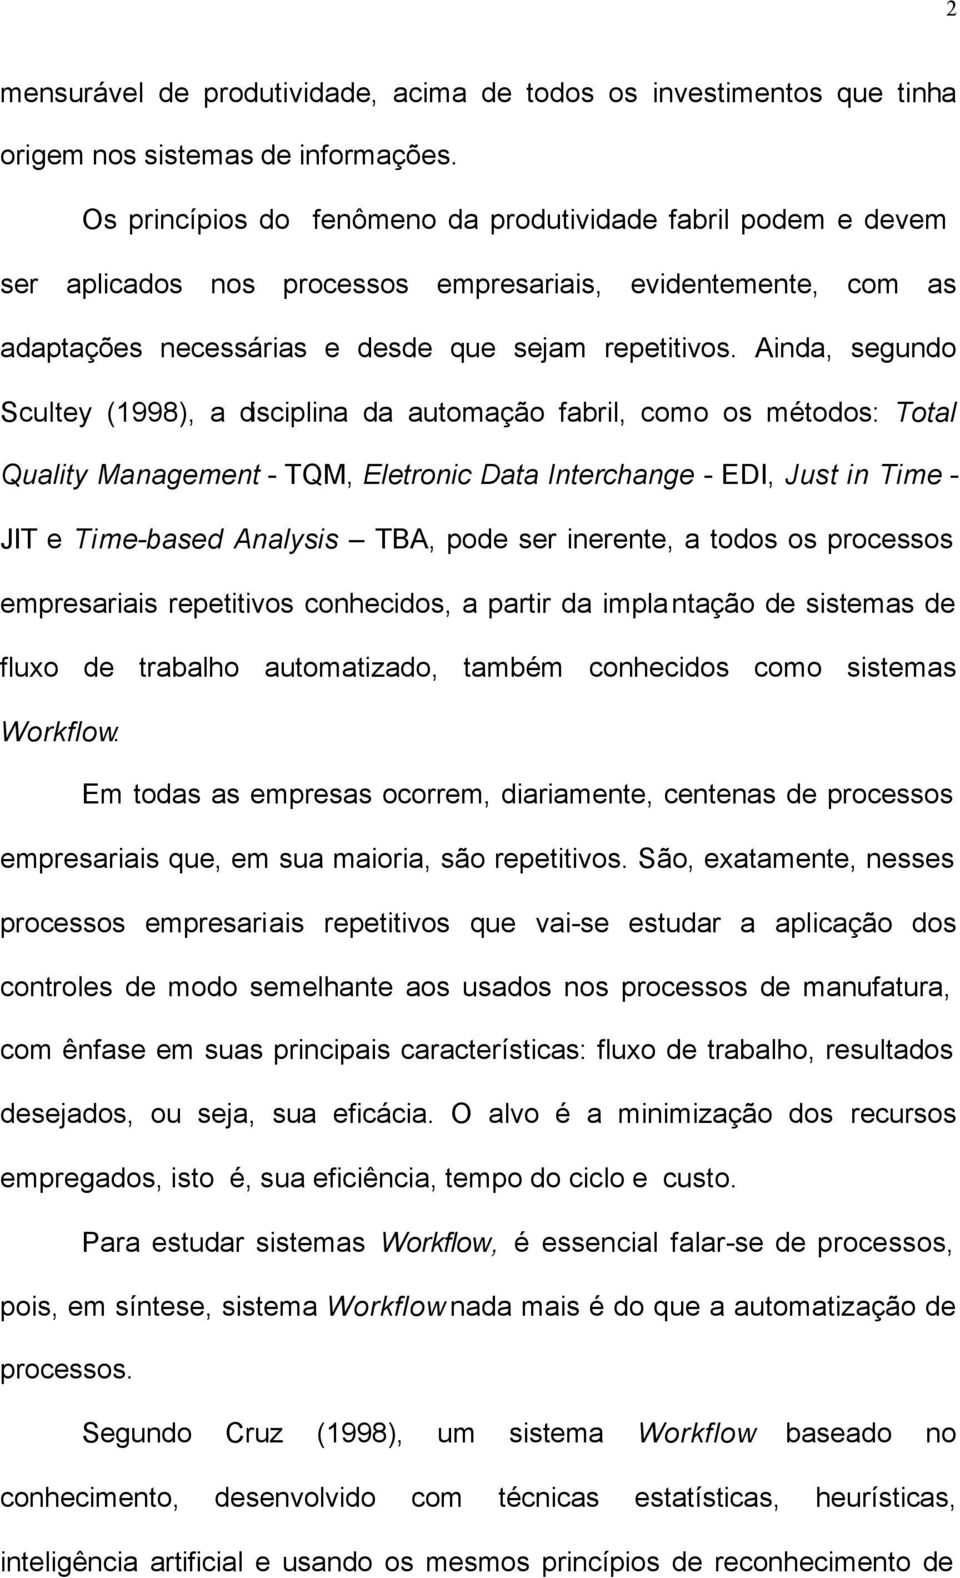 Ainda, segundo Scultey (1998), a disciplina da automação fabril, como os métodos: Total Quality Management - TQM, Eletronic Data Interchange - EDI, Just in Time - JIT e Time-based Analysis TBA, pode